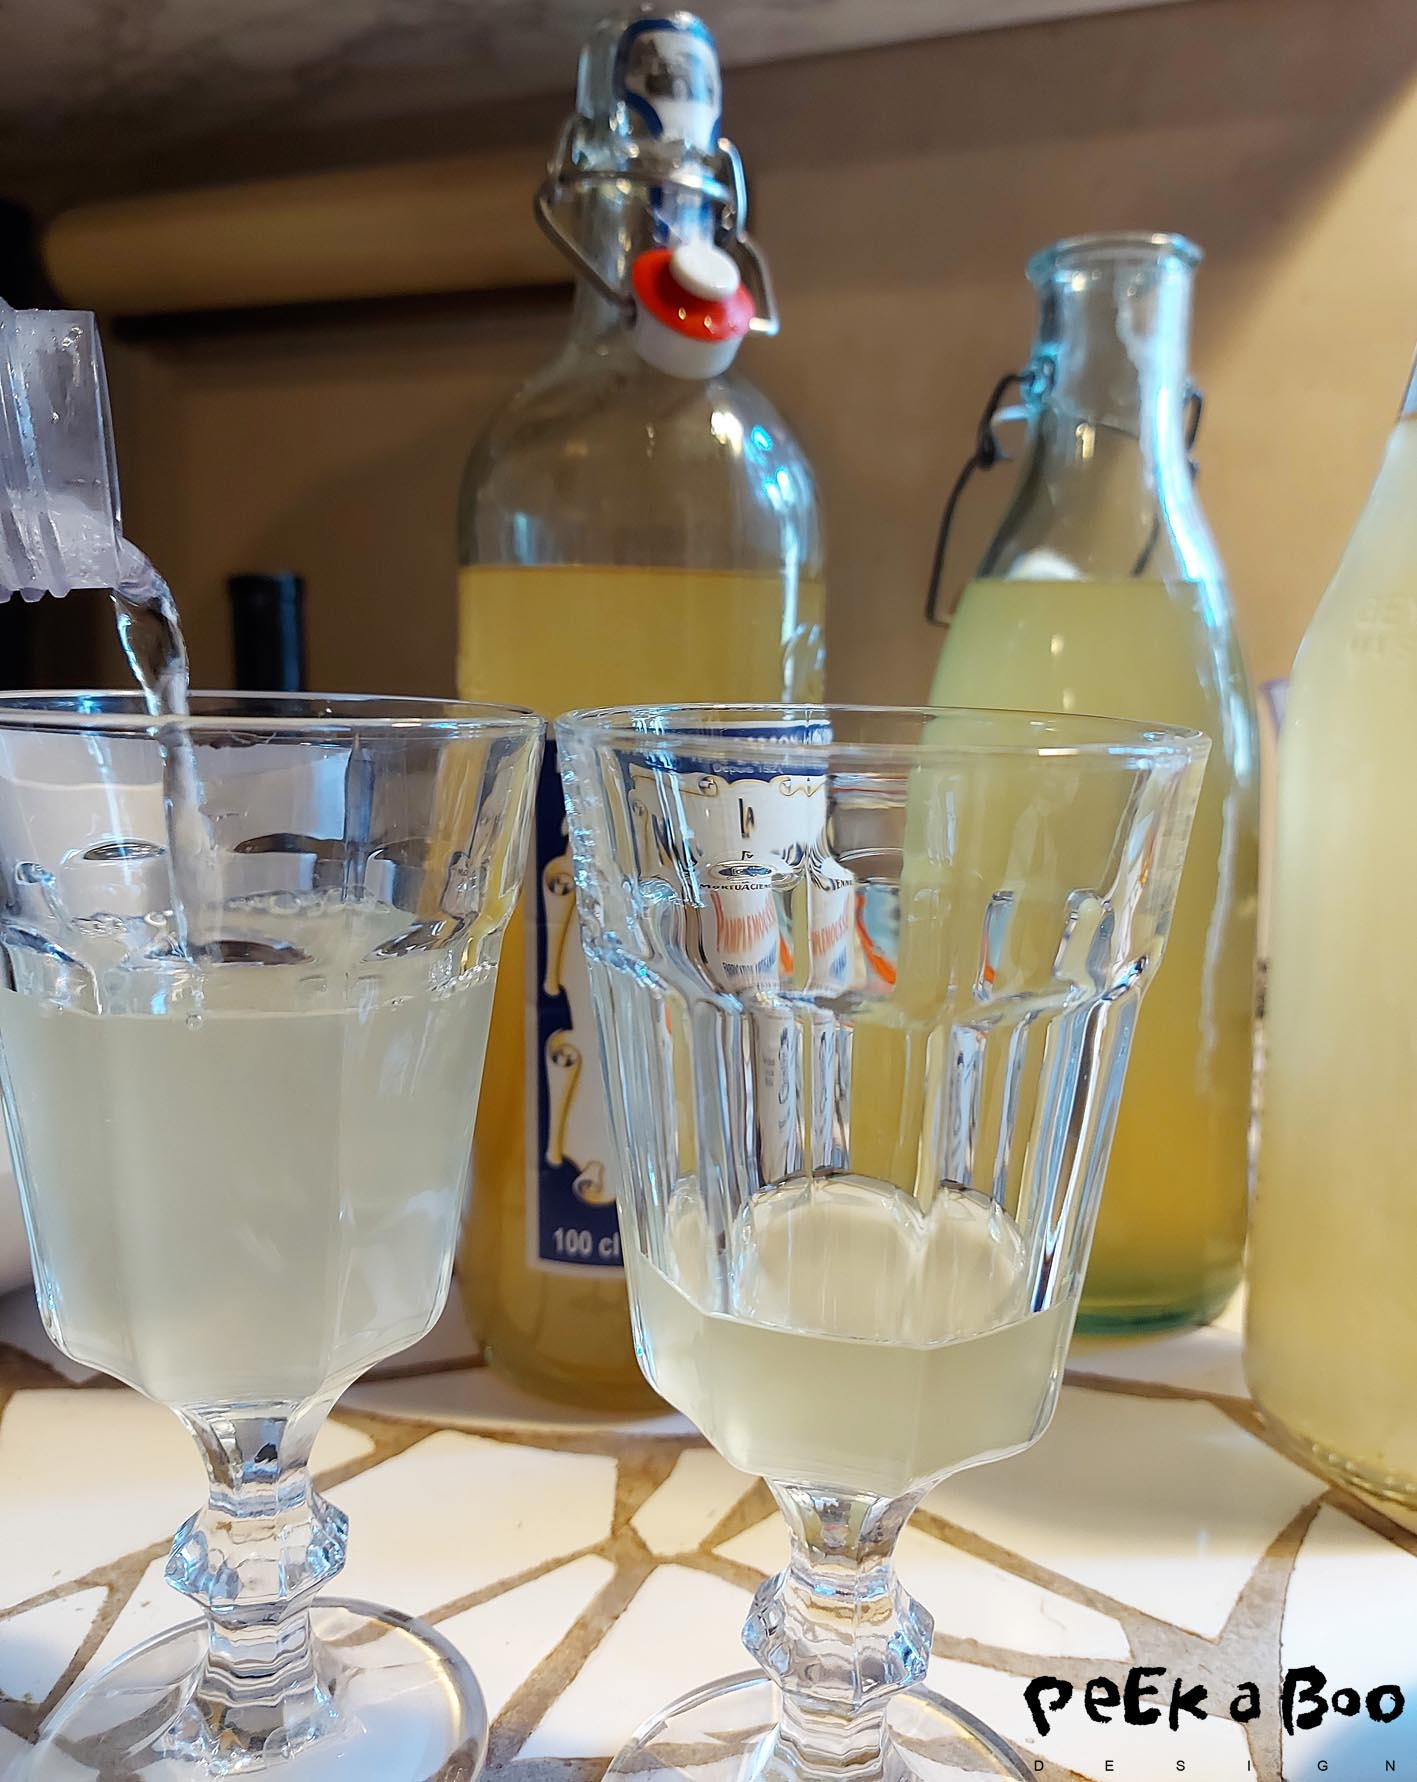 Mix the elderflower with sparkling soda for at refeshing summerdrink.